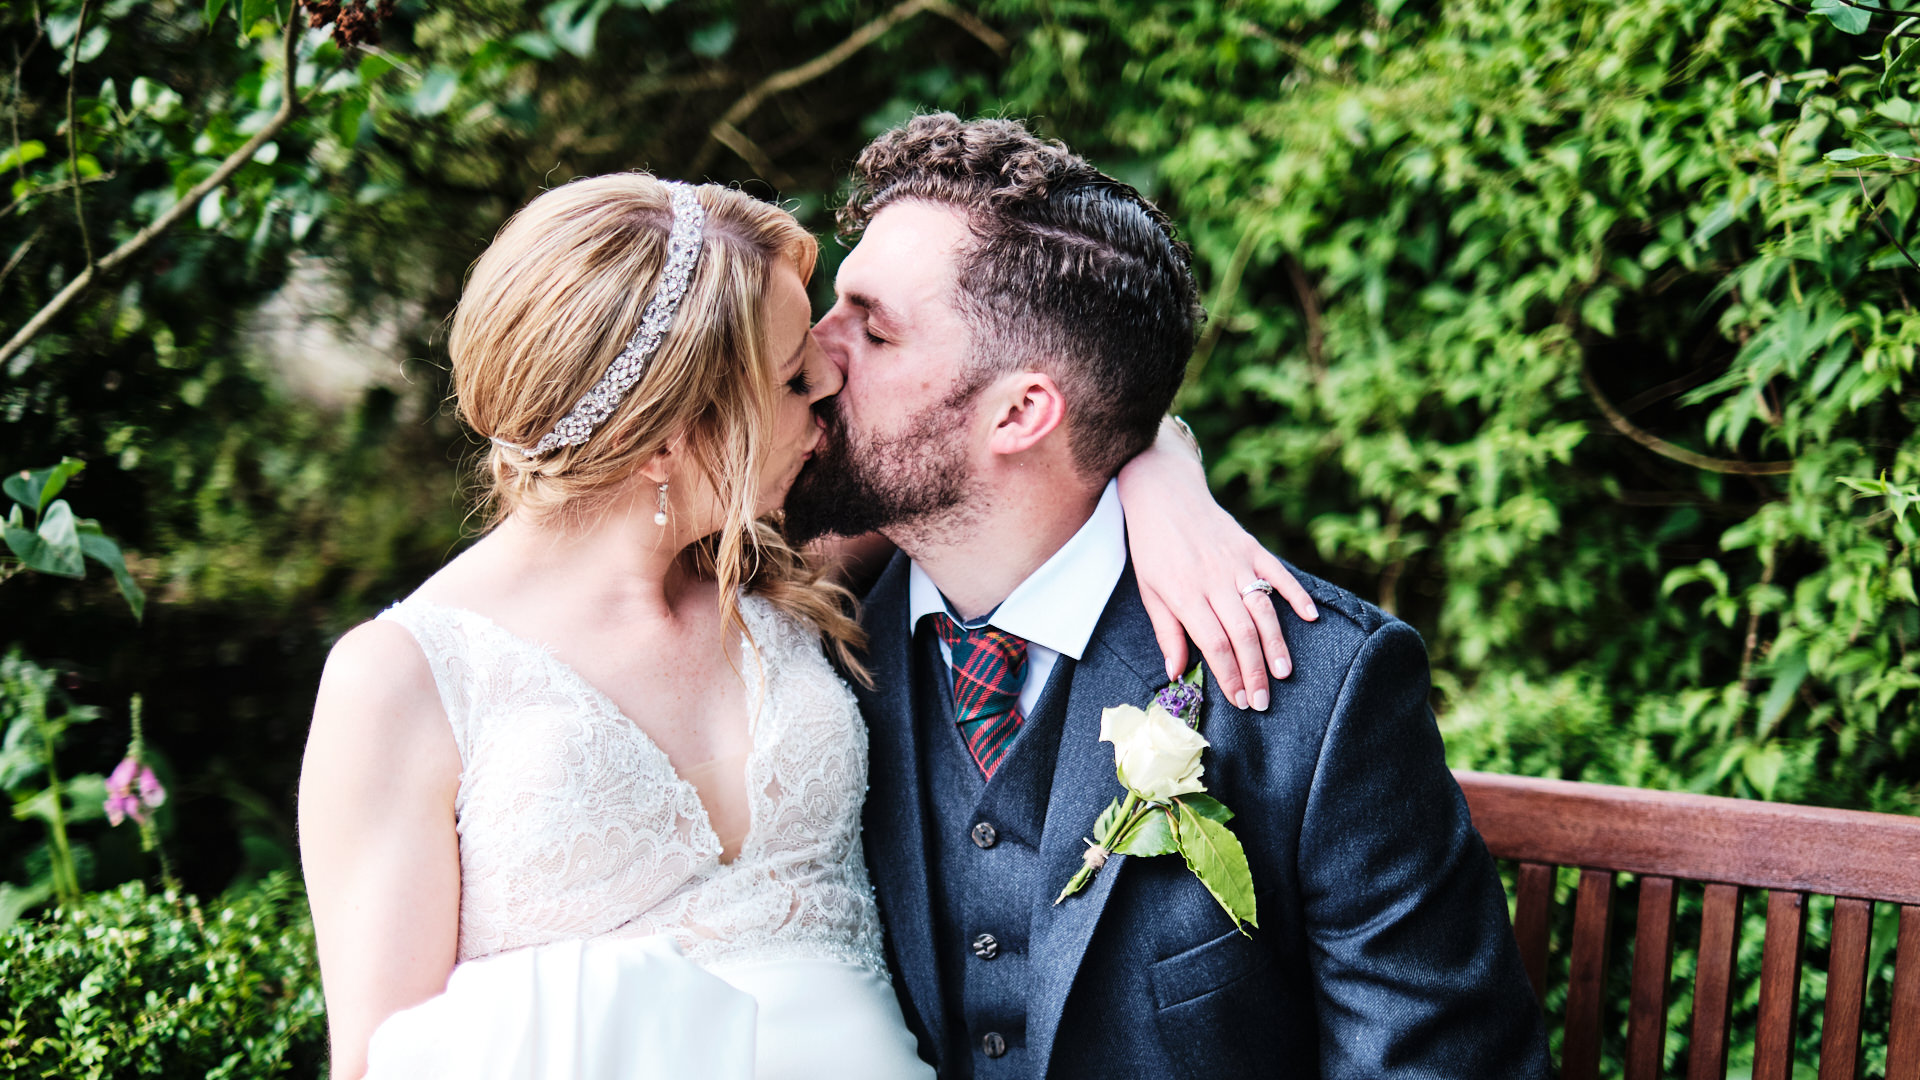 colour photograph of the bride and groom kissing in their garden during their wedding